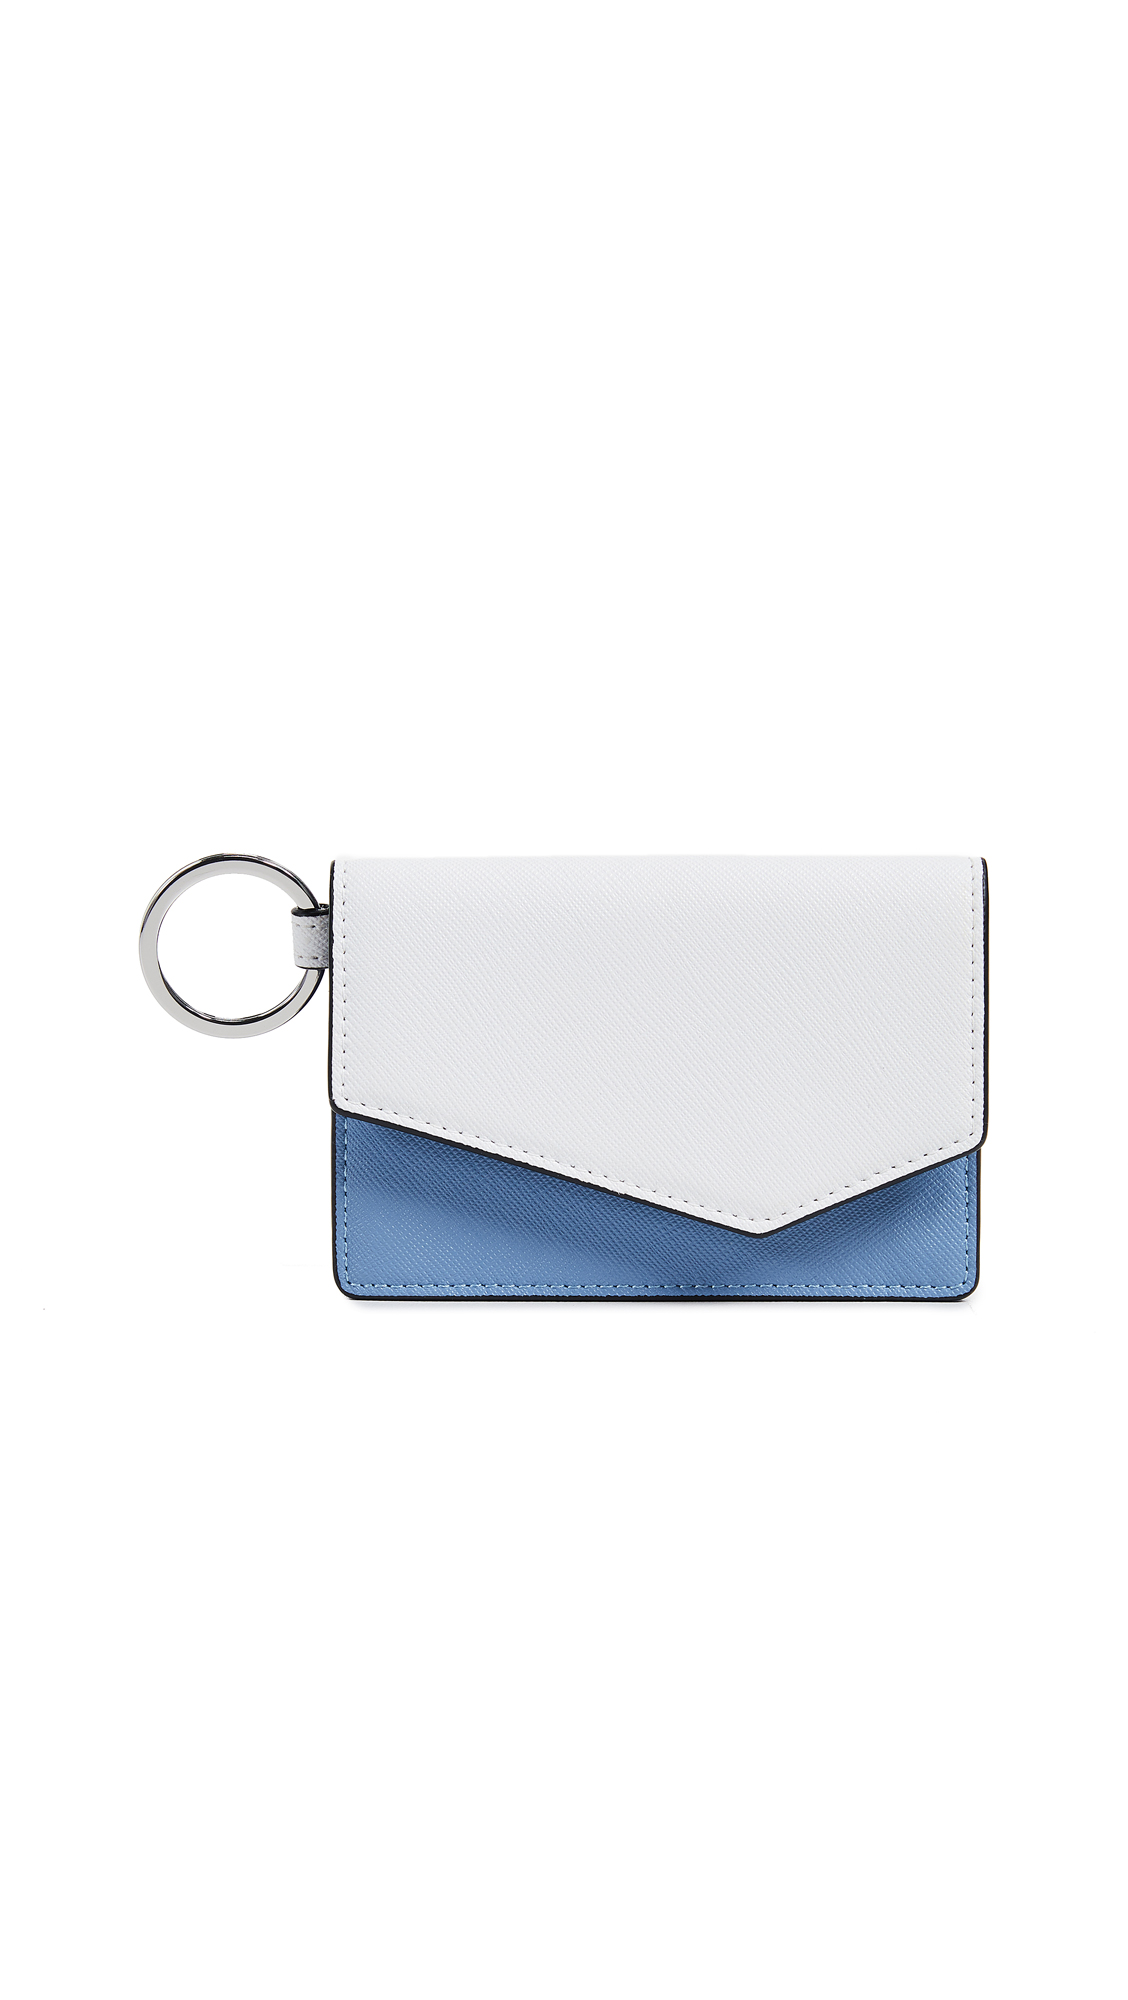 Cobble Hill Colorblock Clutch, Sky Colorblock